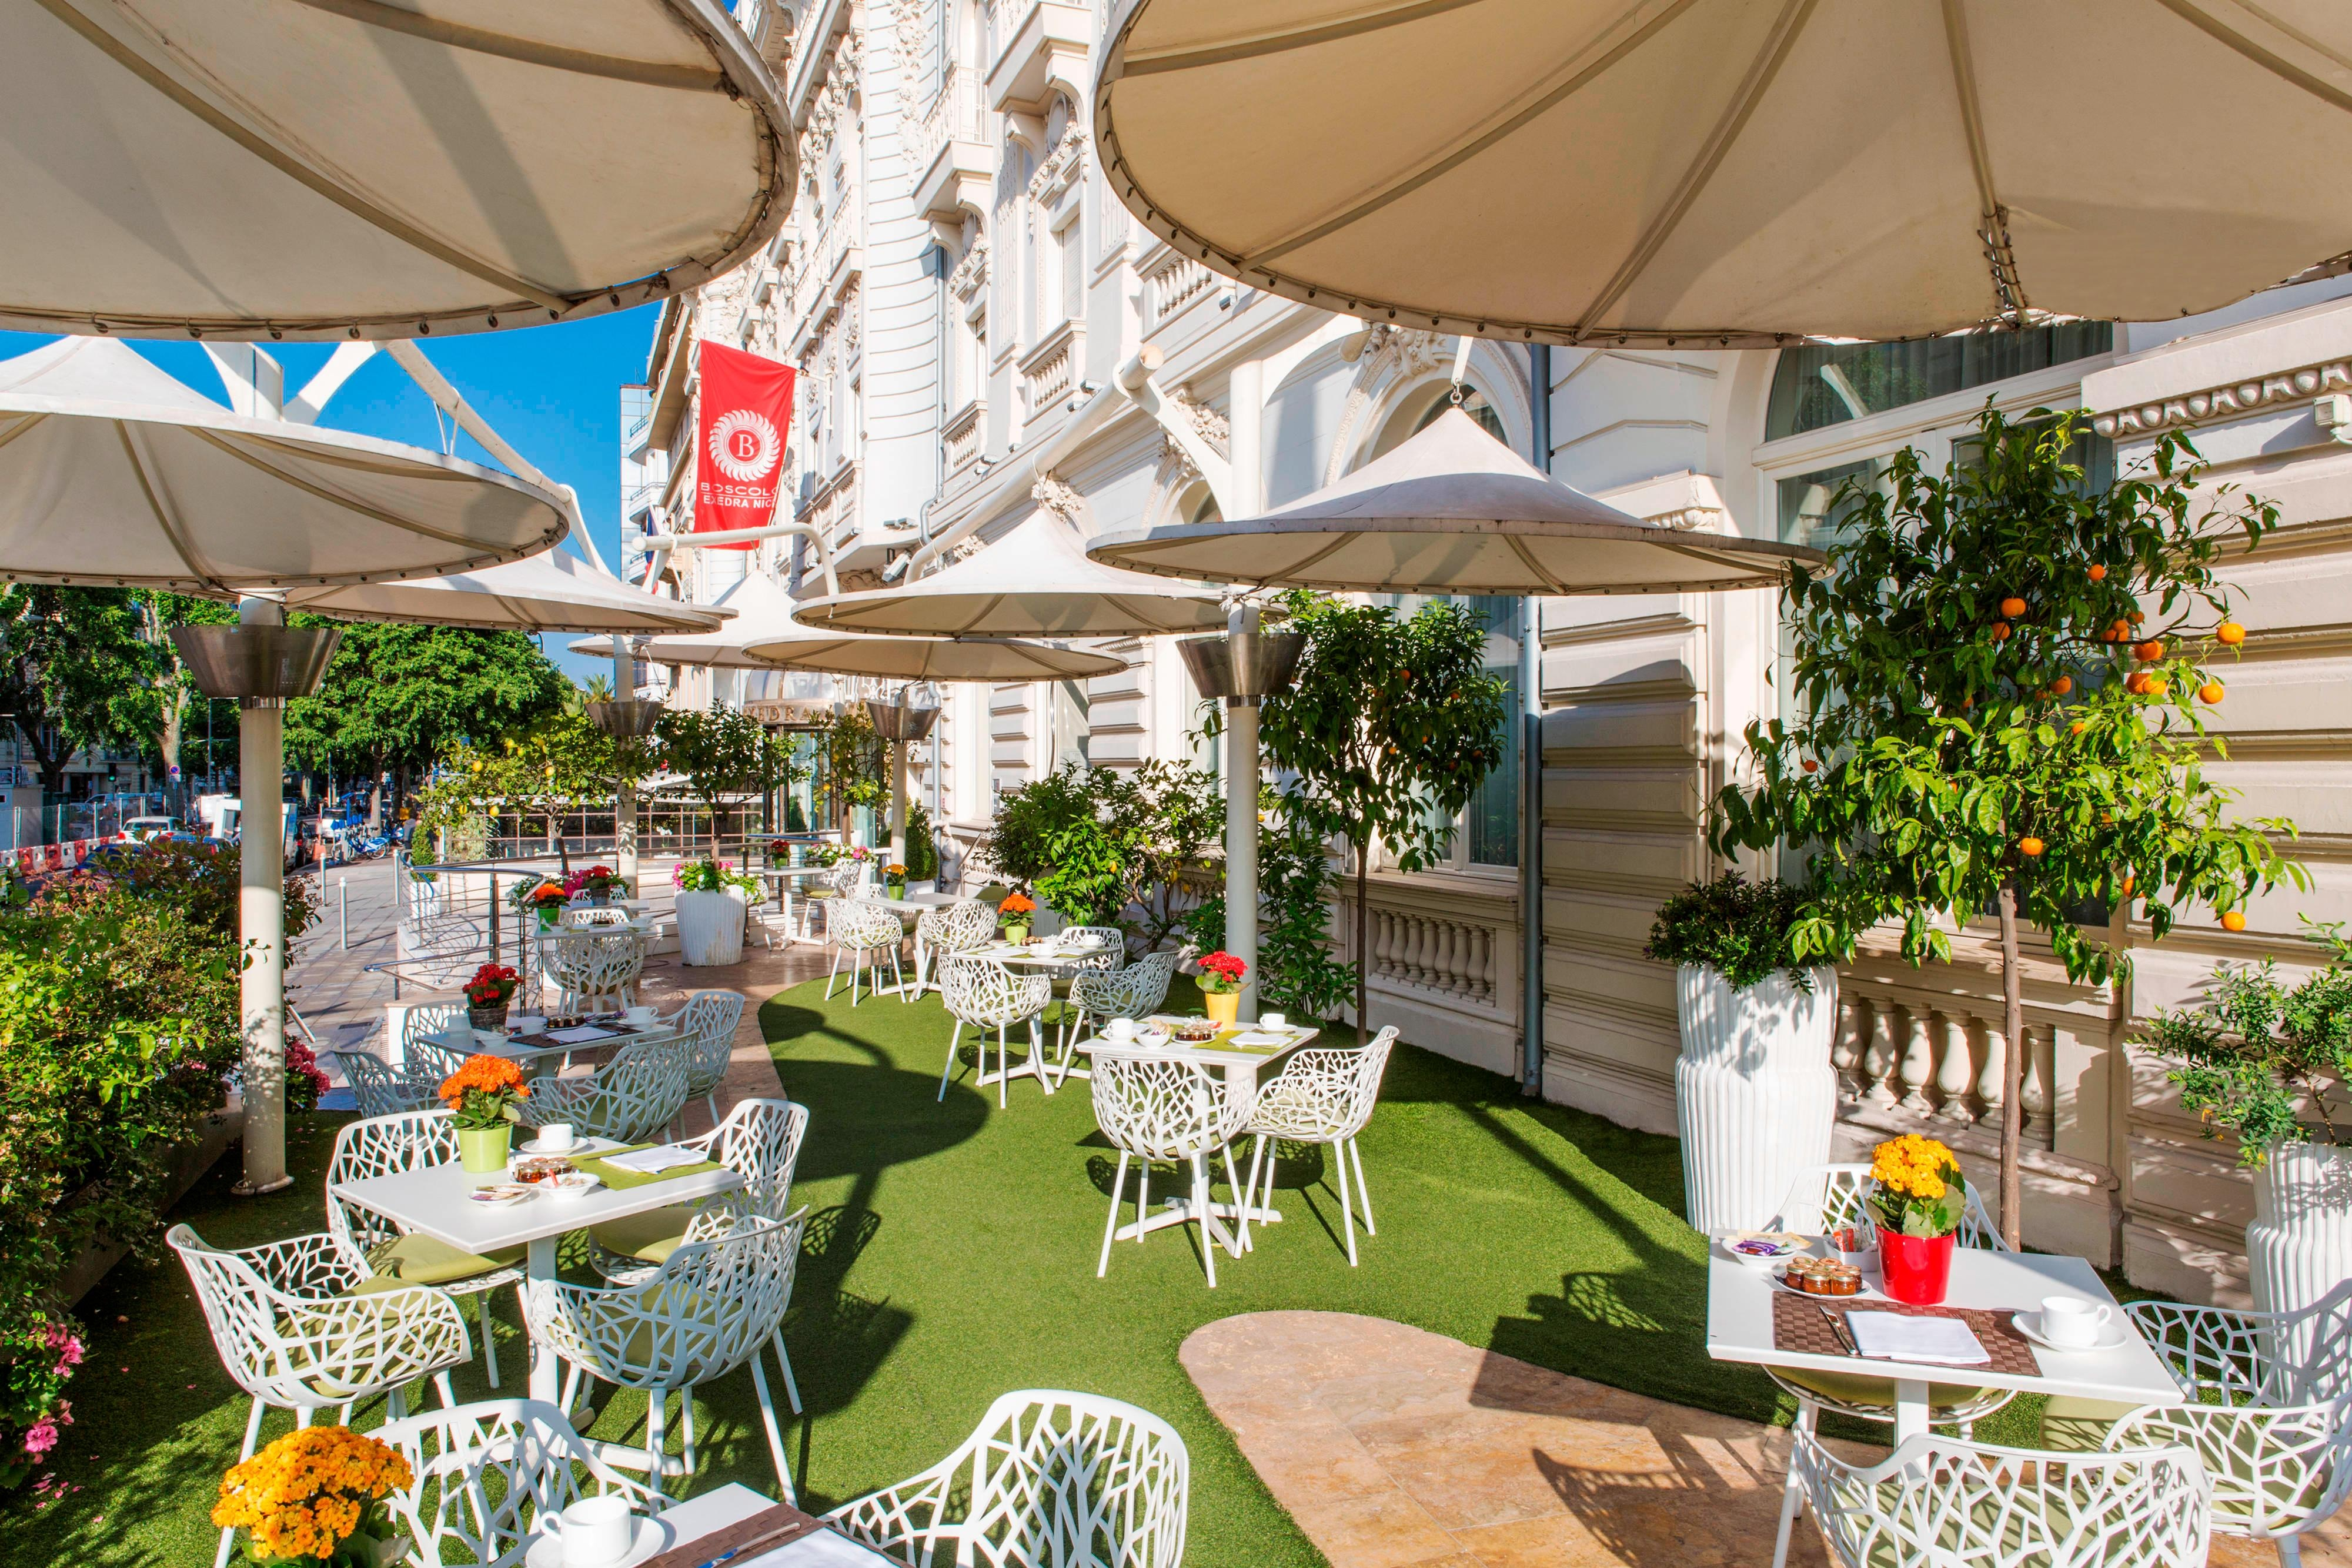 Hotel bar terrace in Nice